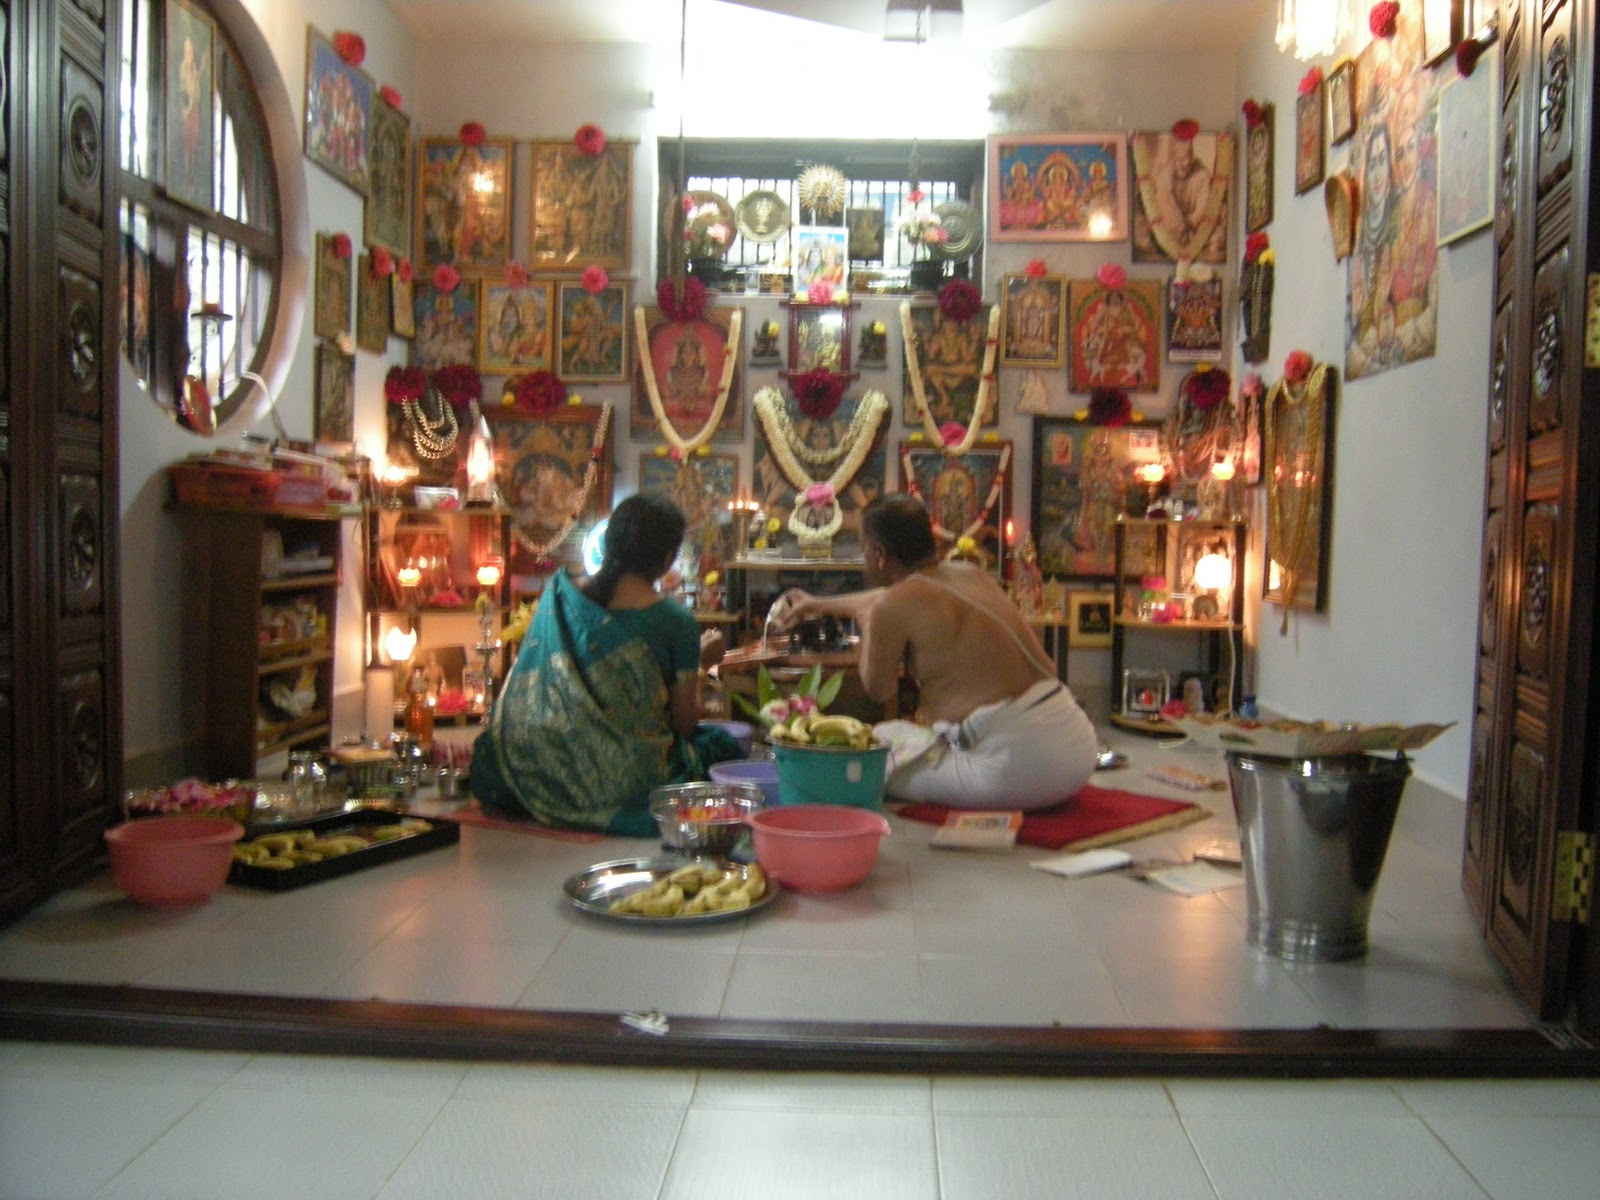 In the Puja Room